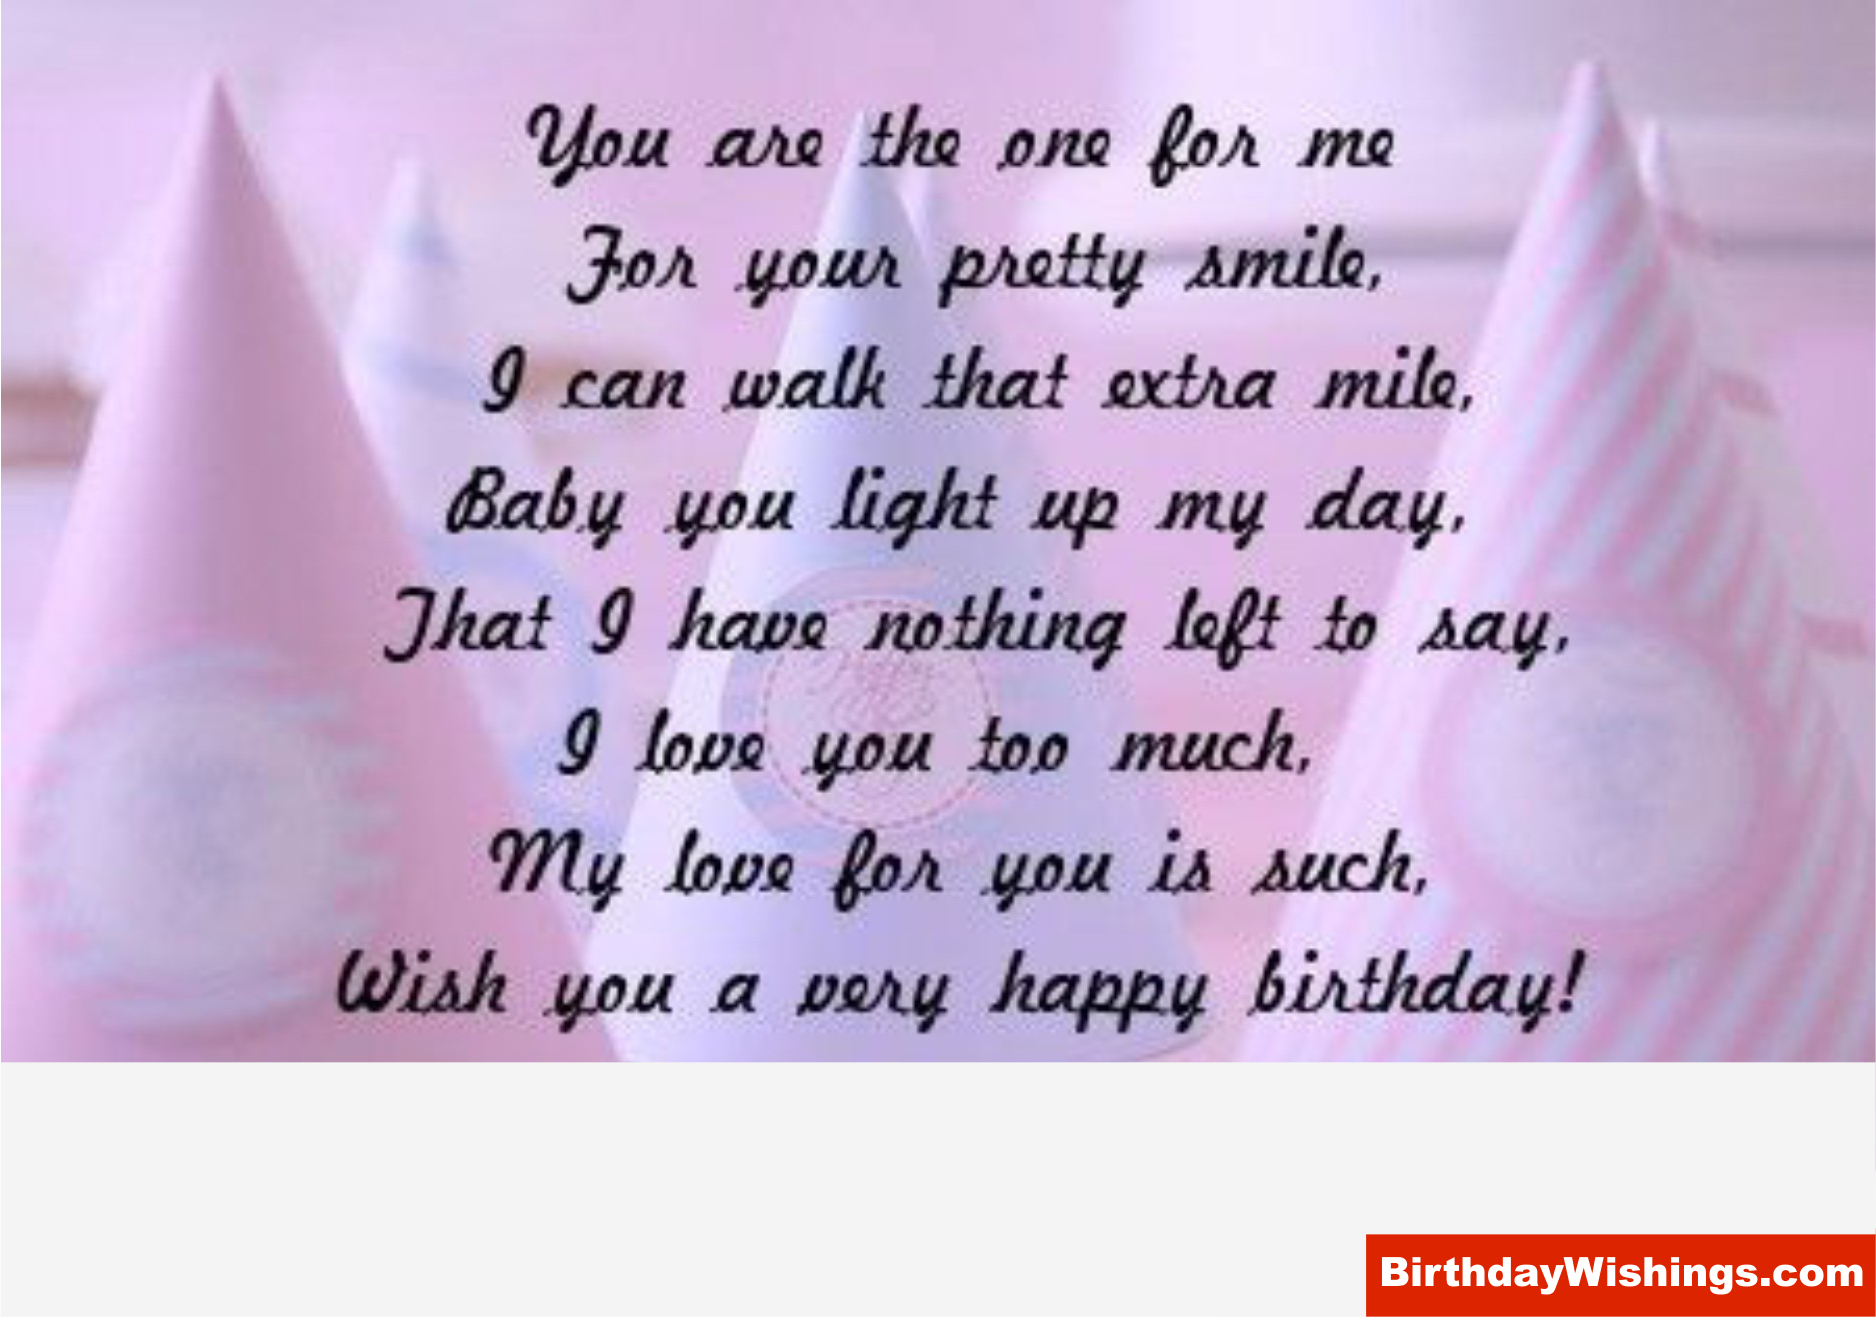 Birthday Poem For Some One Special